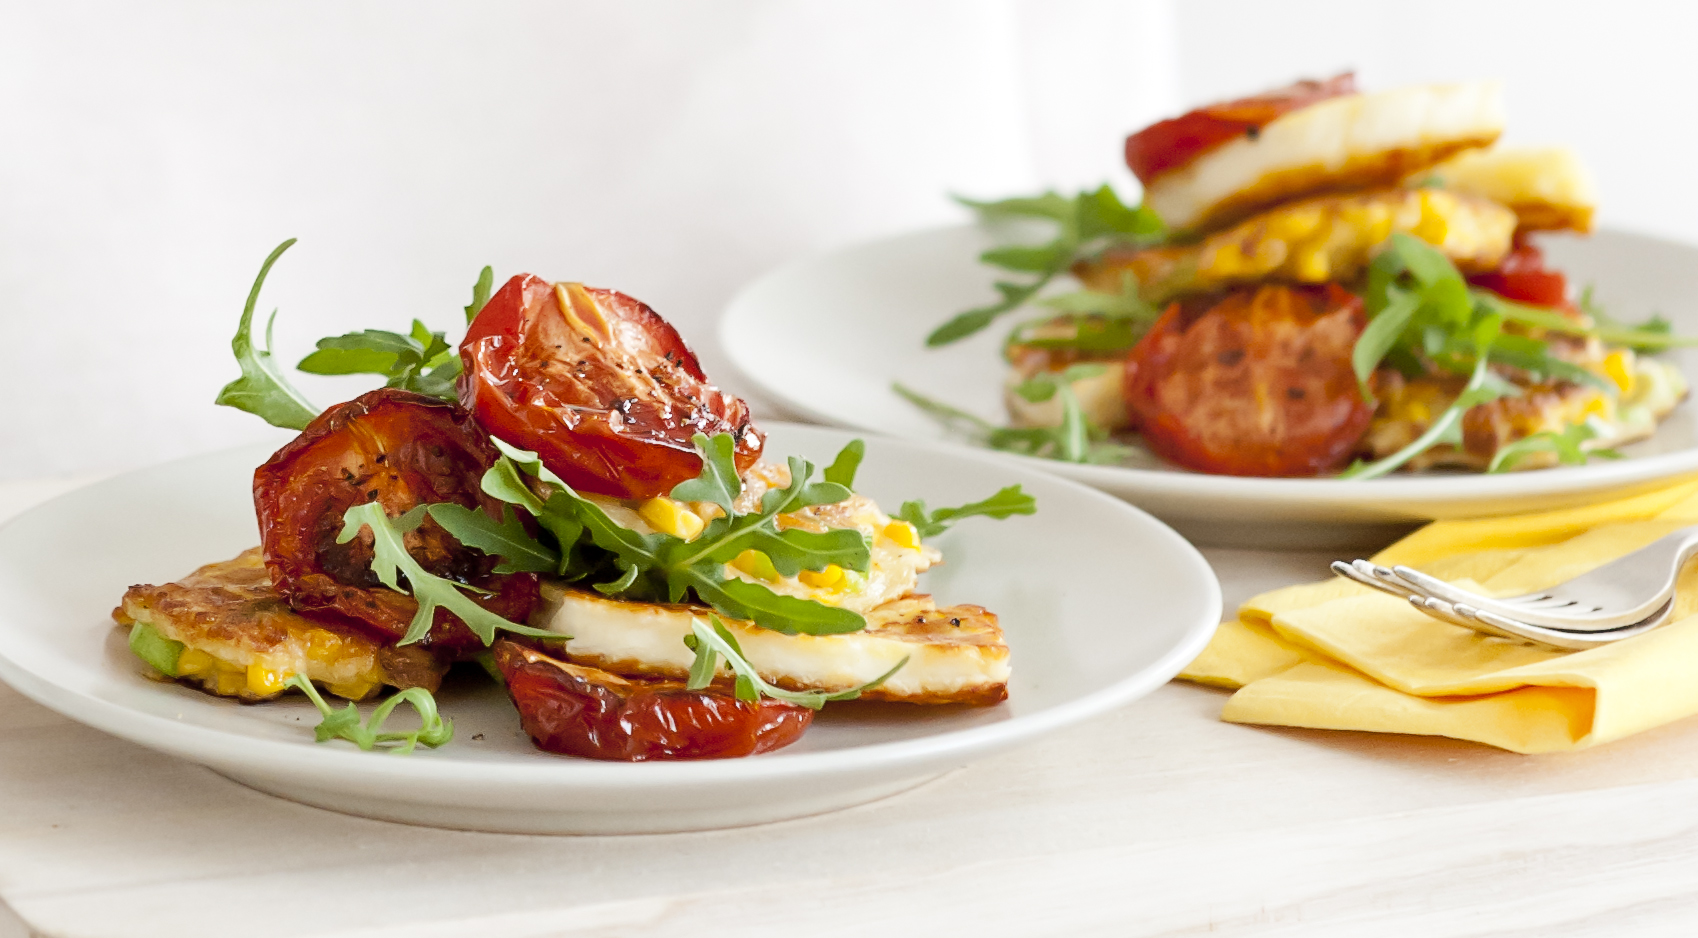 Sweetcorn fritters with roasted tomatoes and halloumi